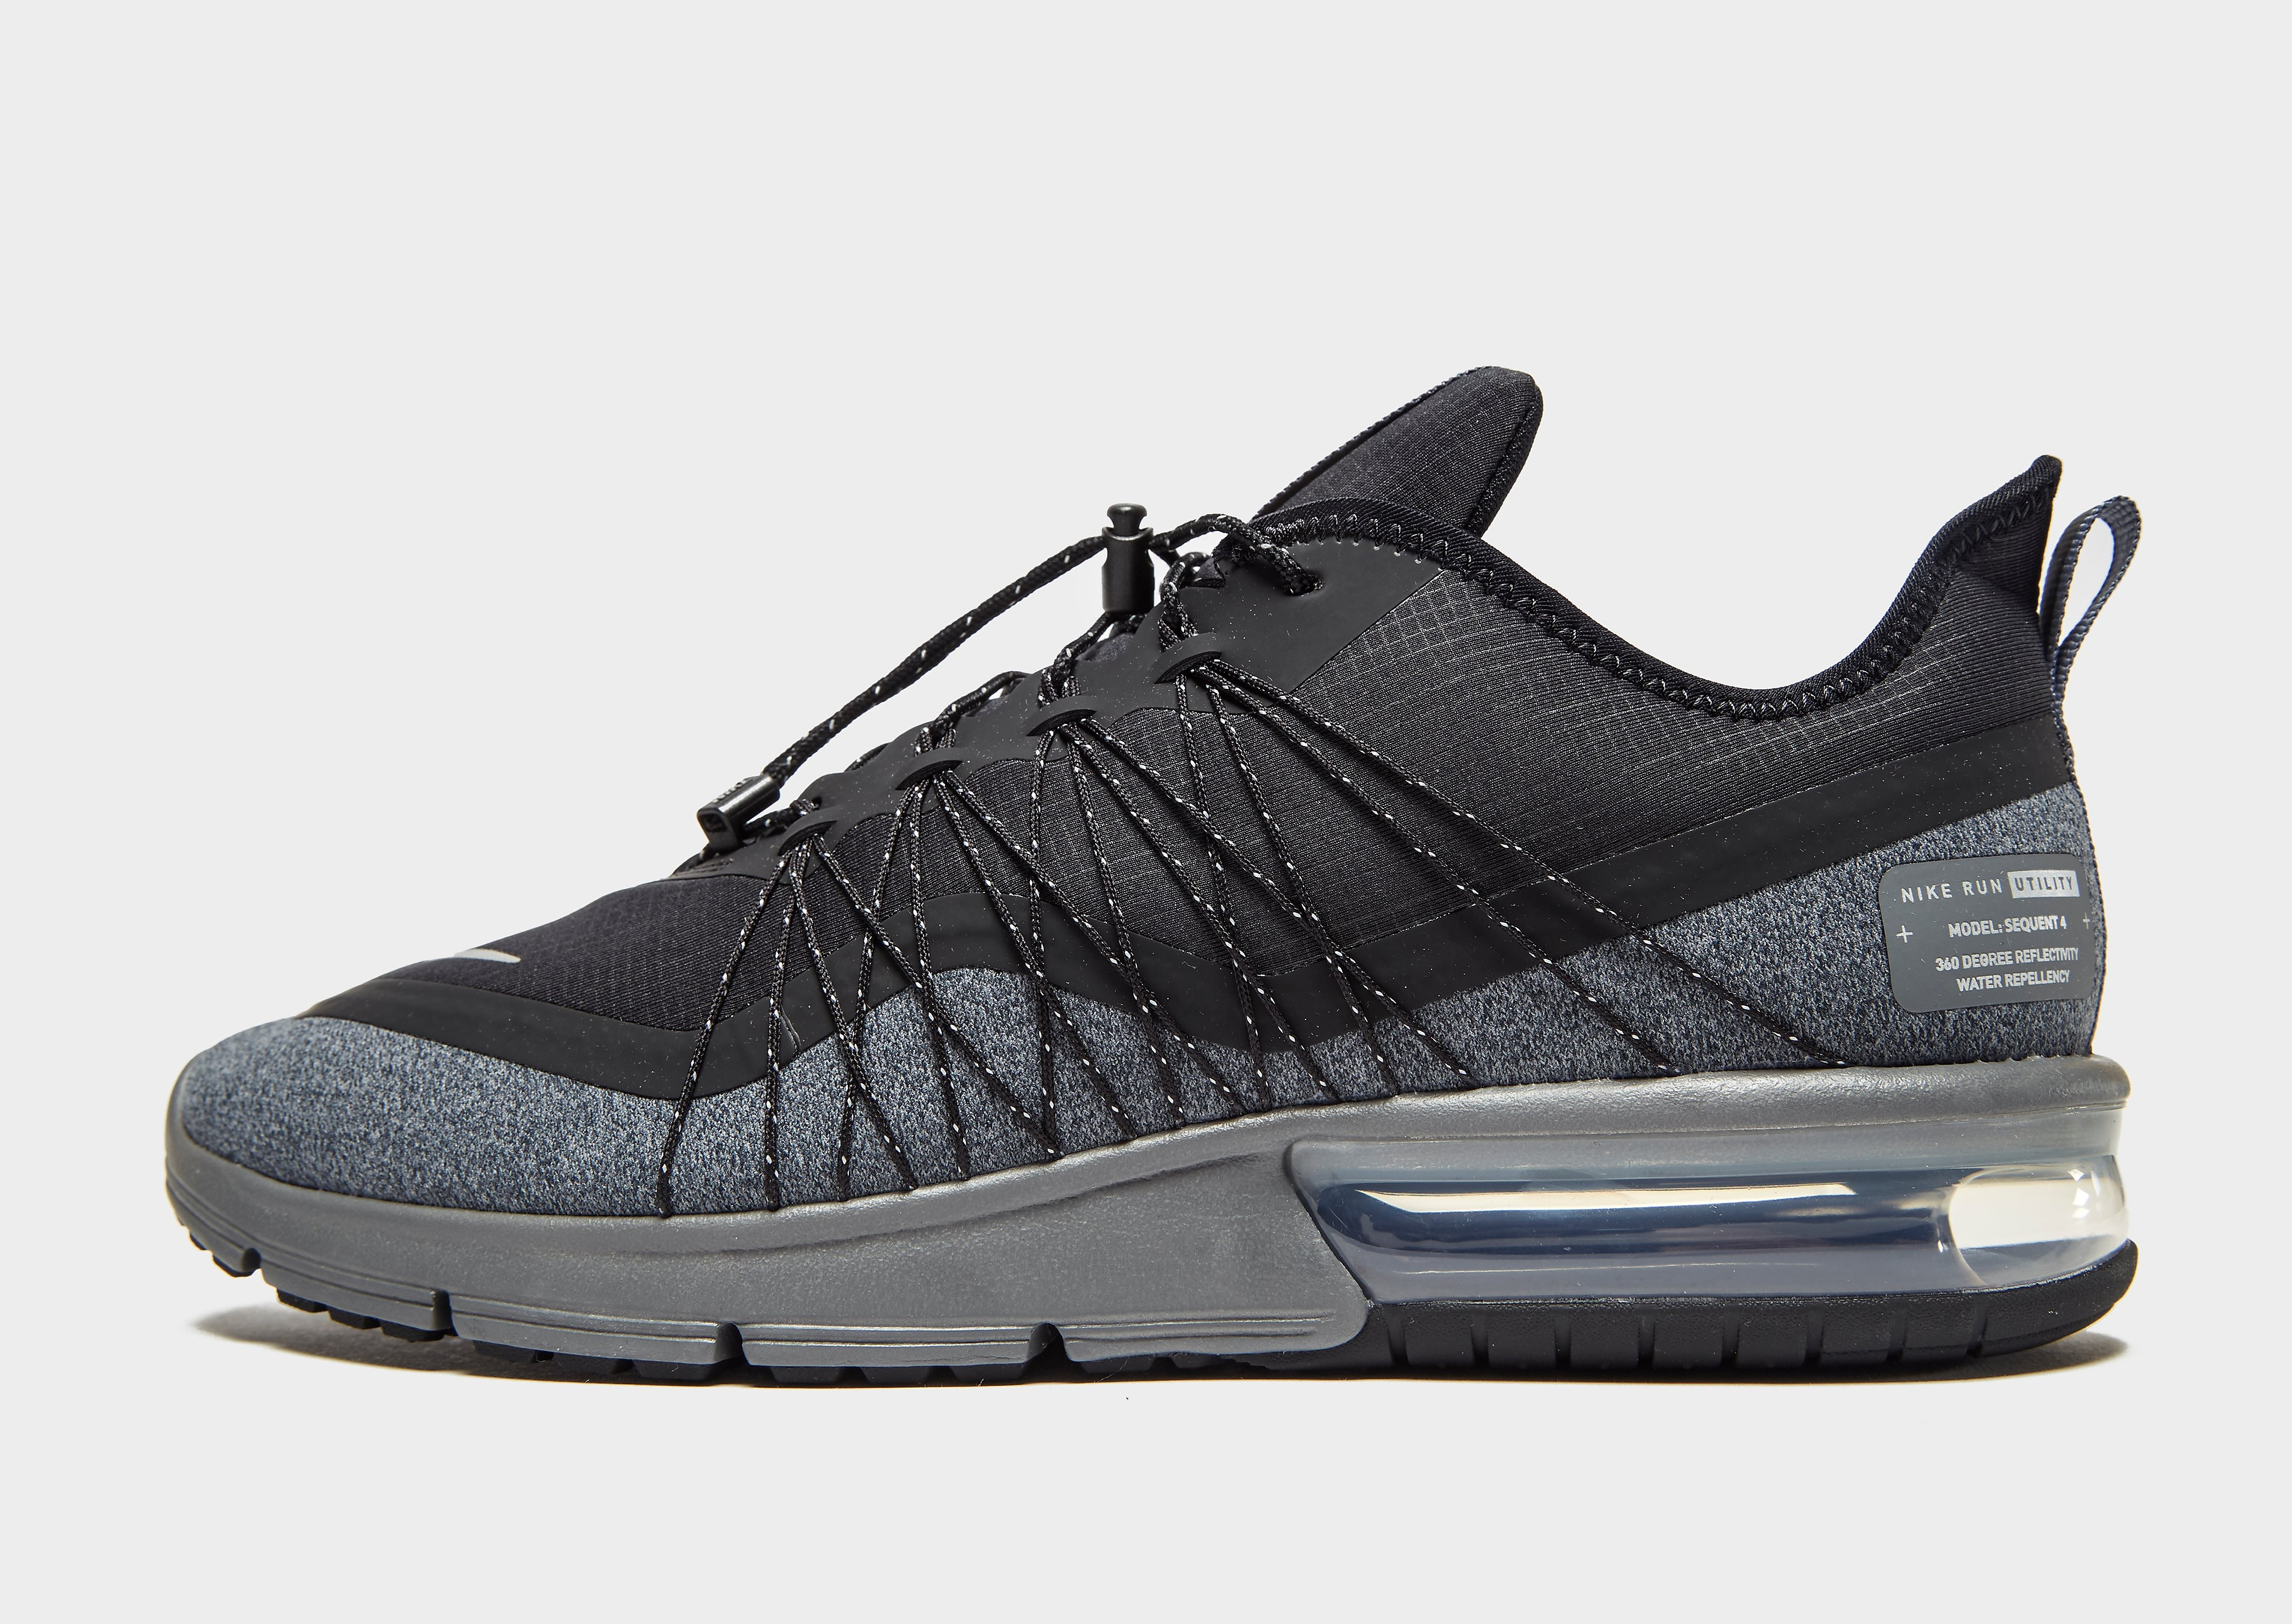 new concept fb41f f09a5 Nike Air Max Sequent 4 Características -  Sneakitup